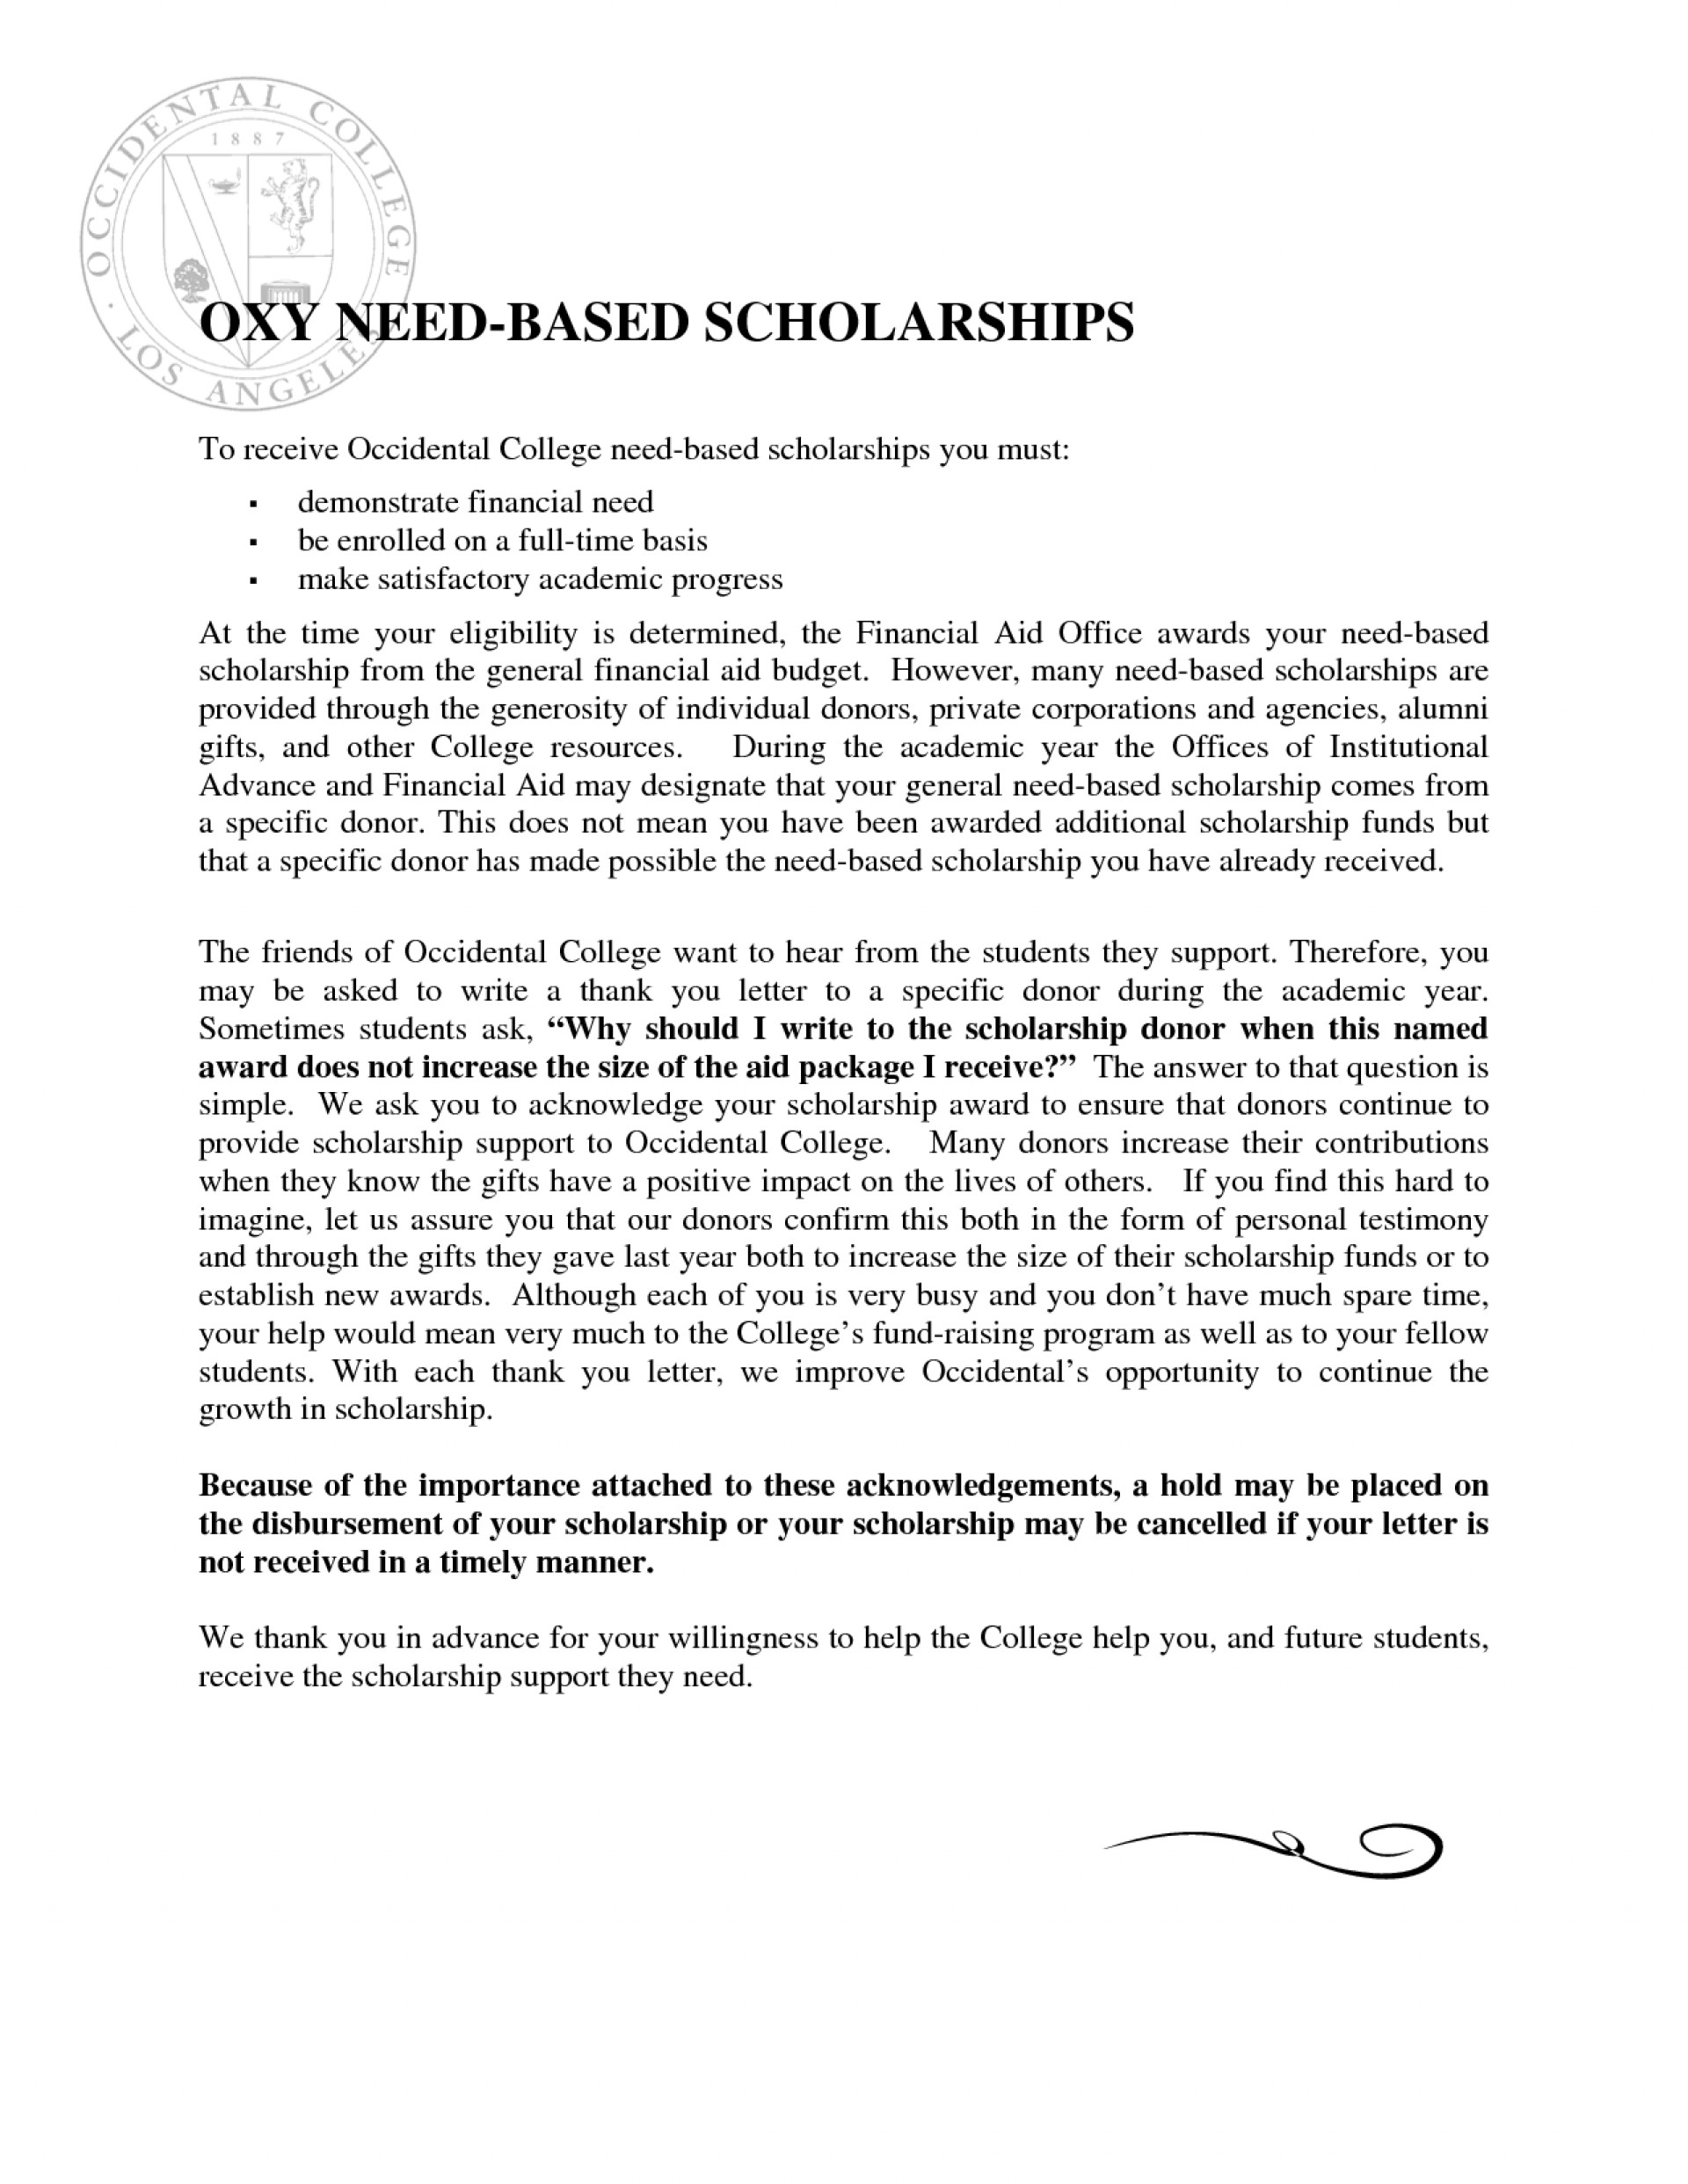 003 Cover Letter Scholarships That Require Essays Resume Daily Colleges L Essay Dreaded Canadian Don't 2019 Need 1920